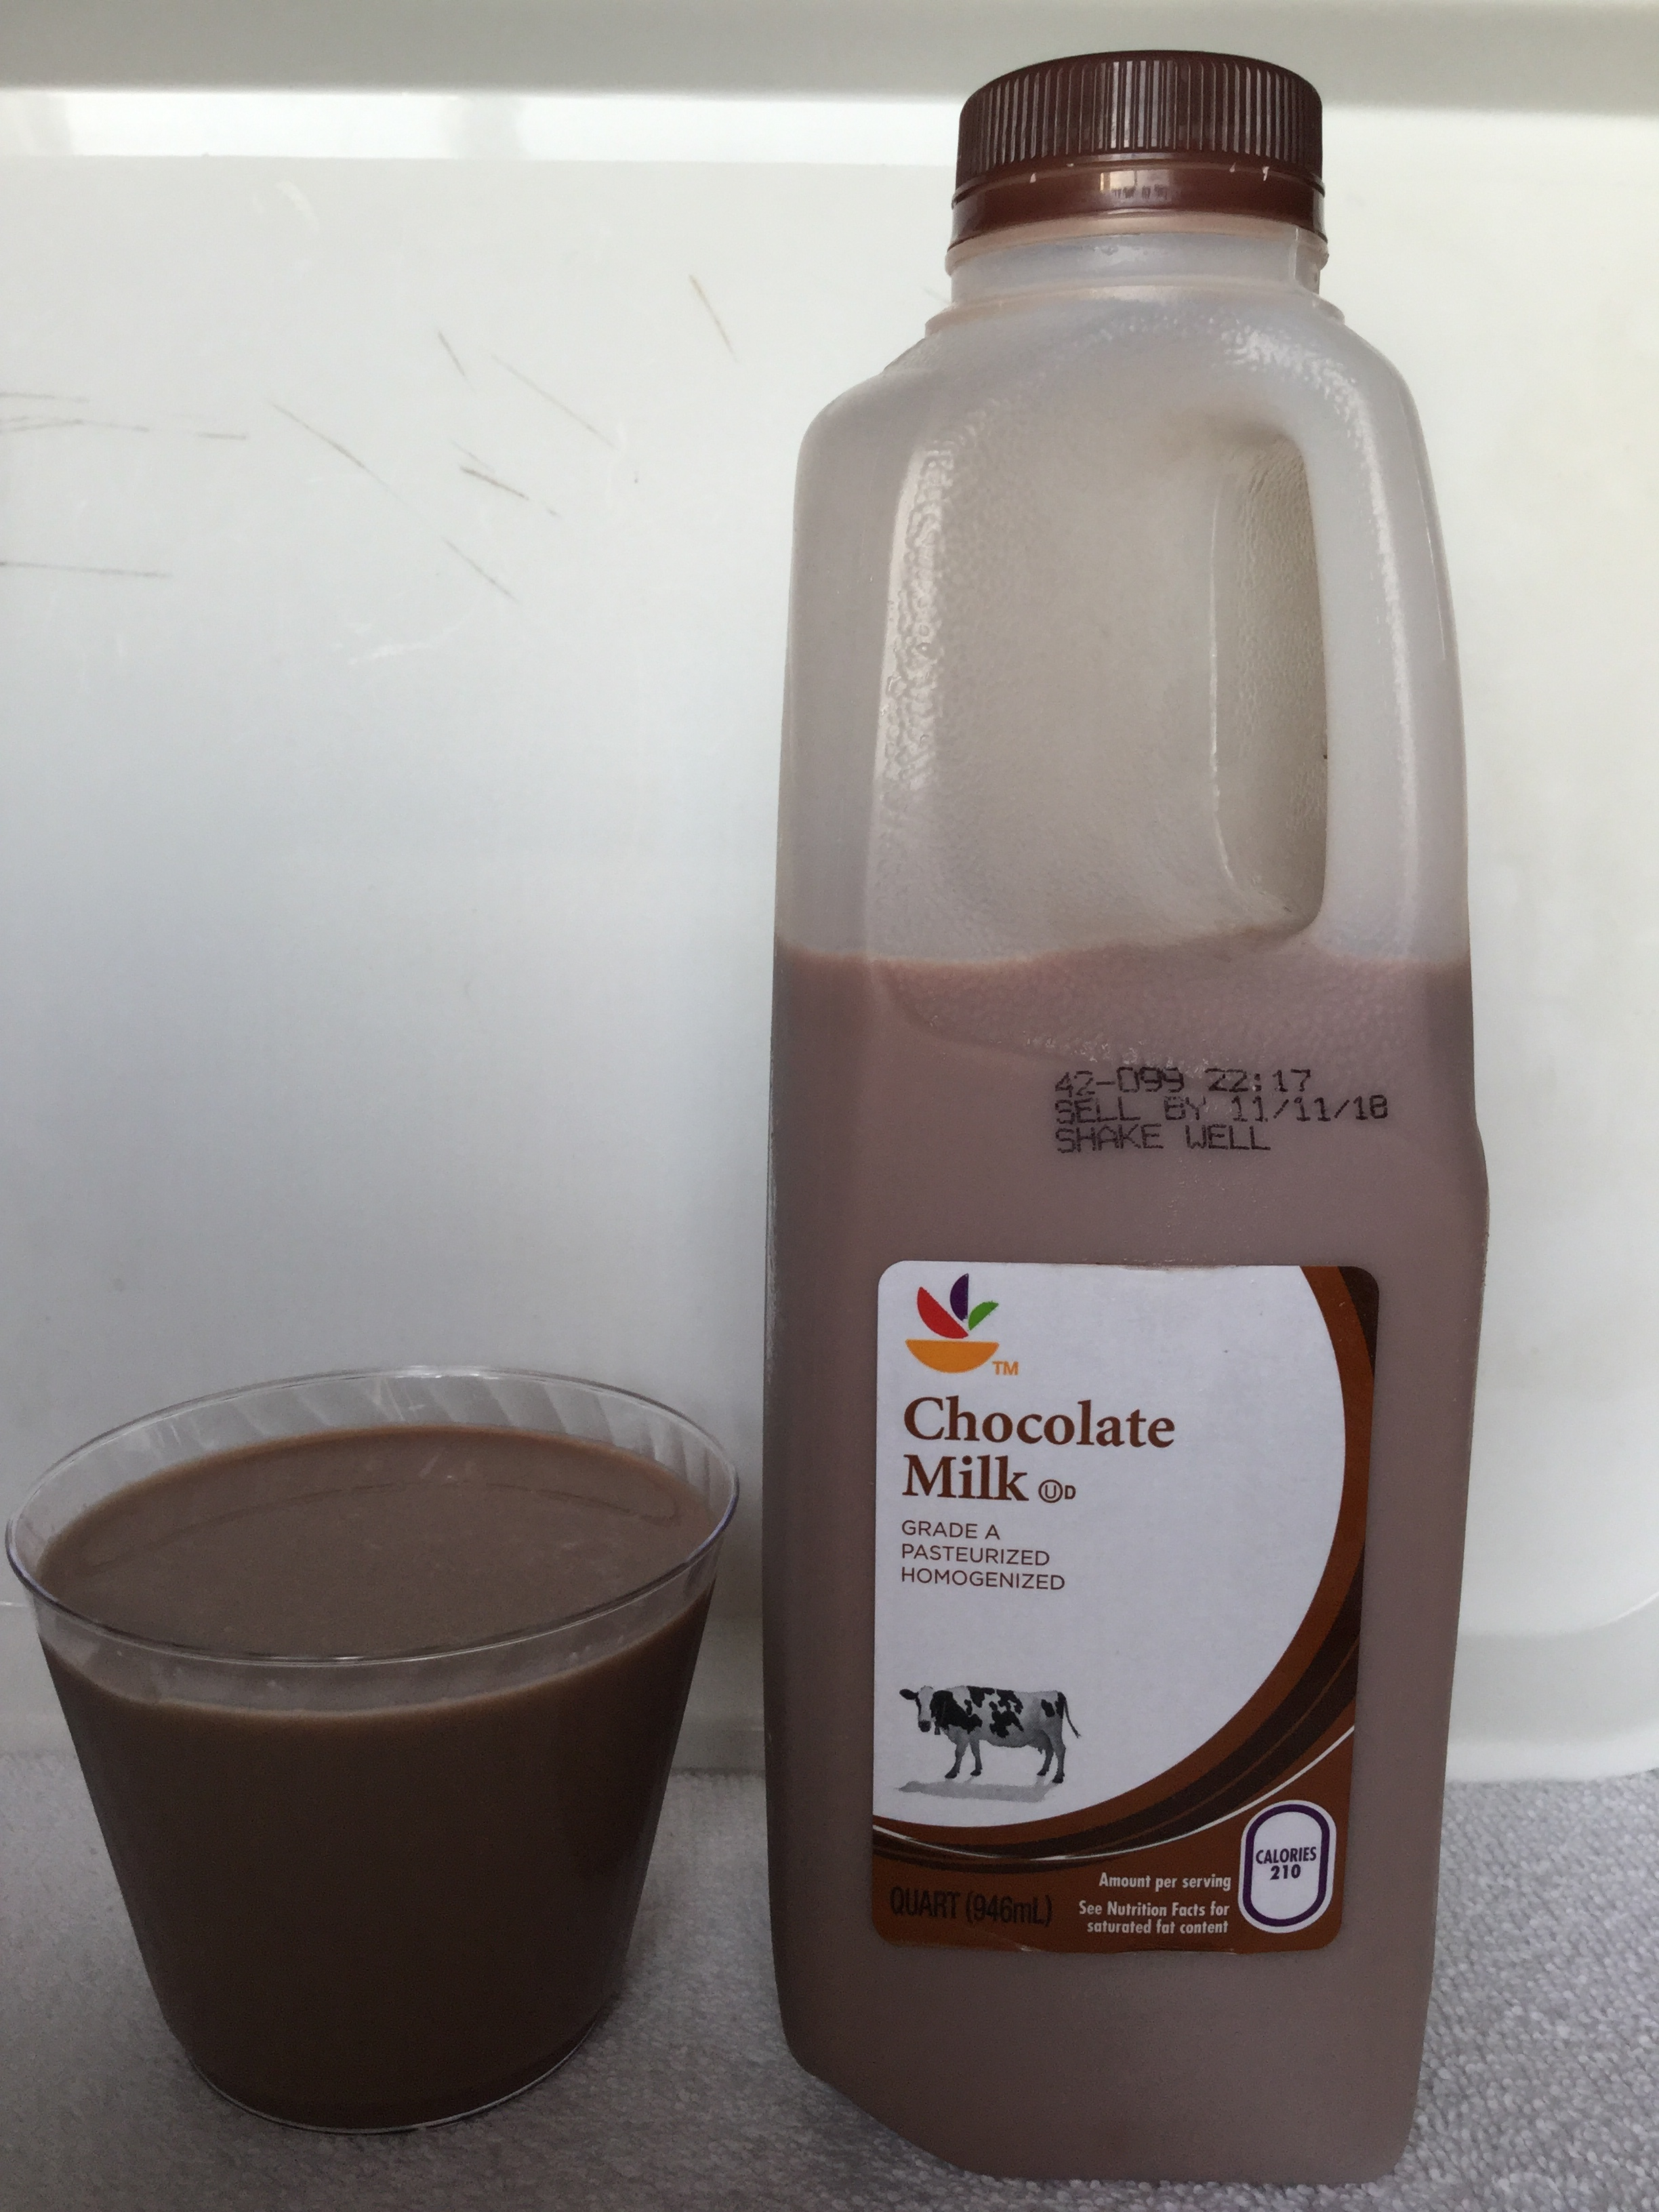 Giant Chocolate Milk Cup